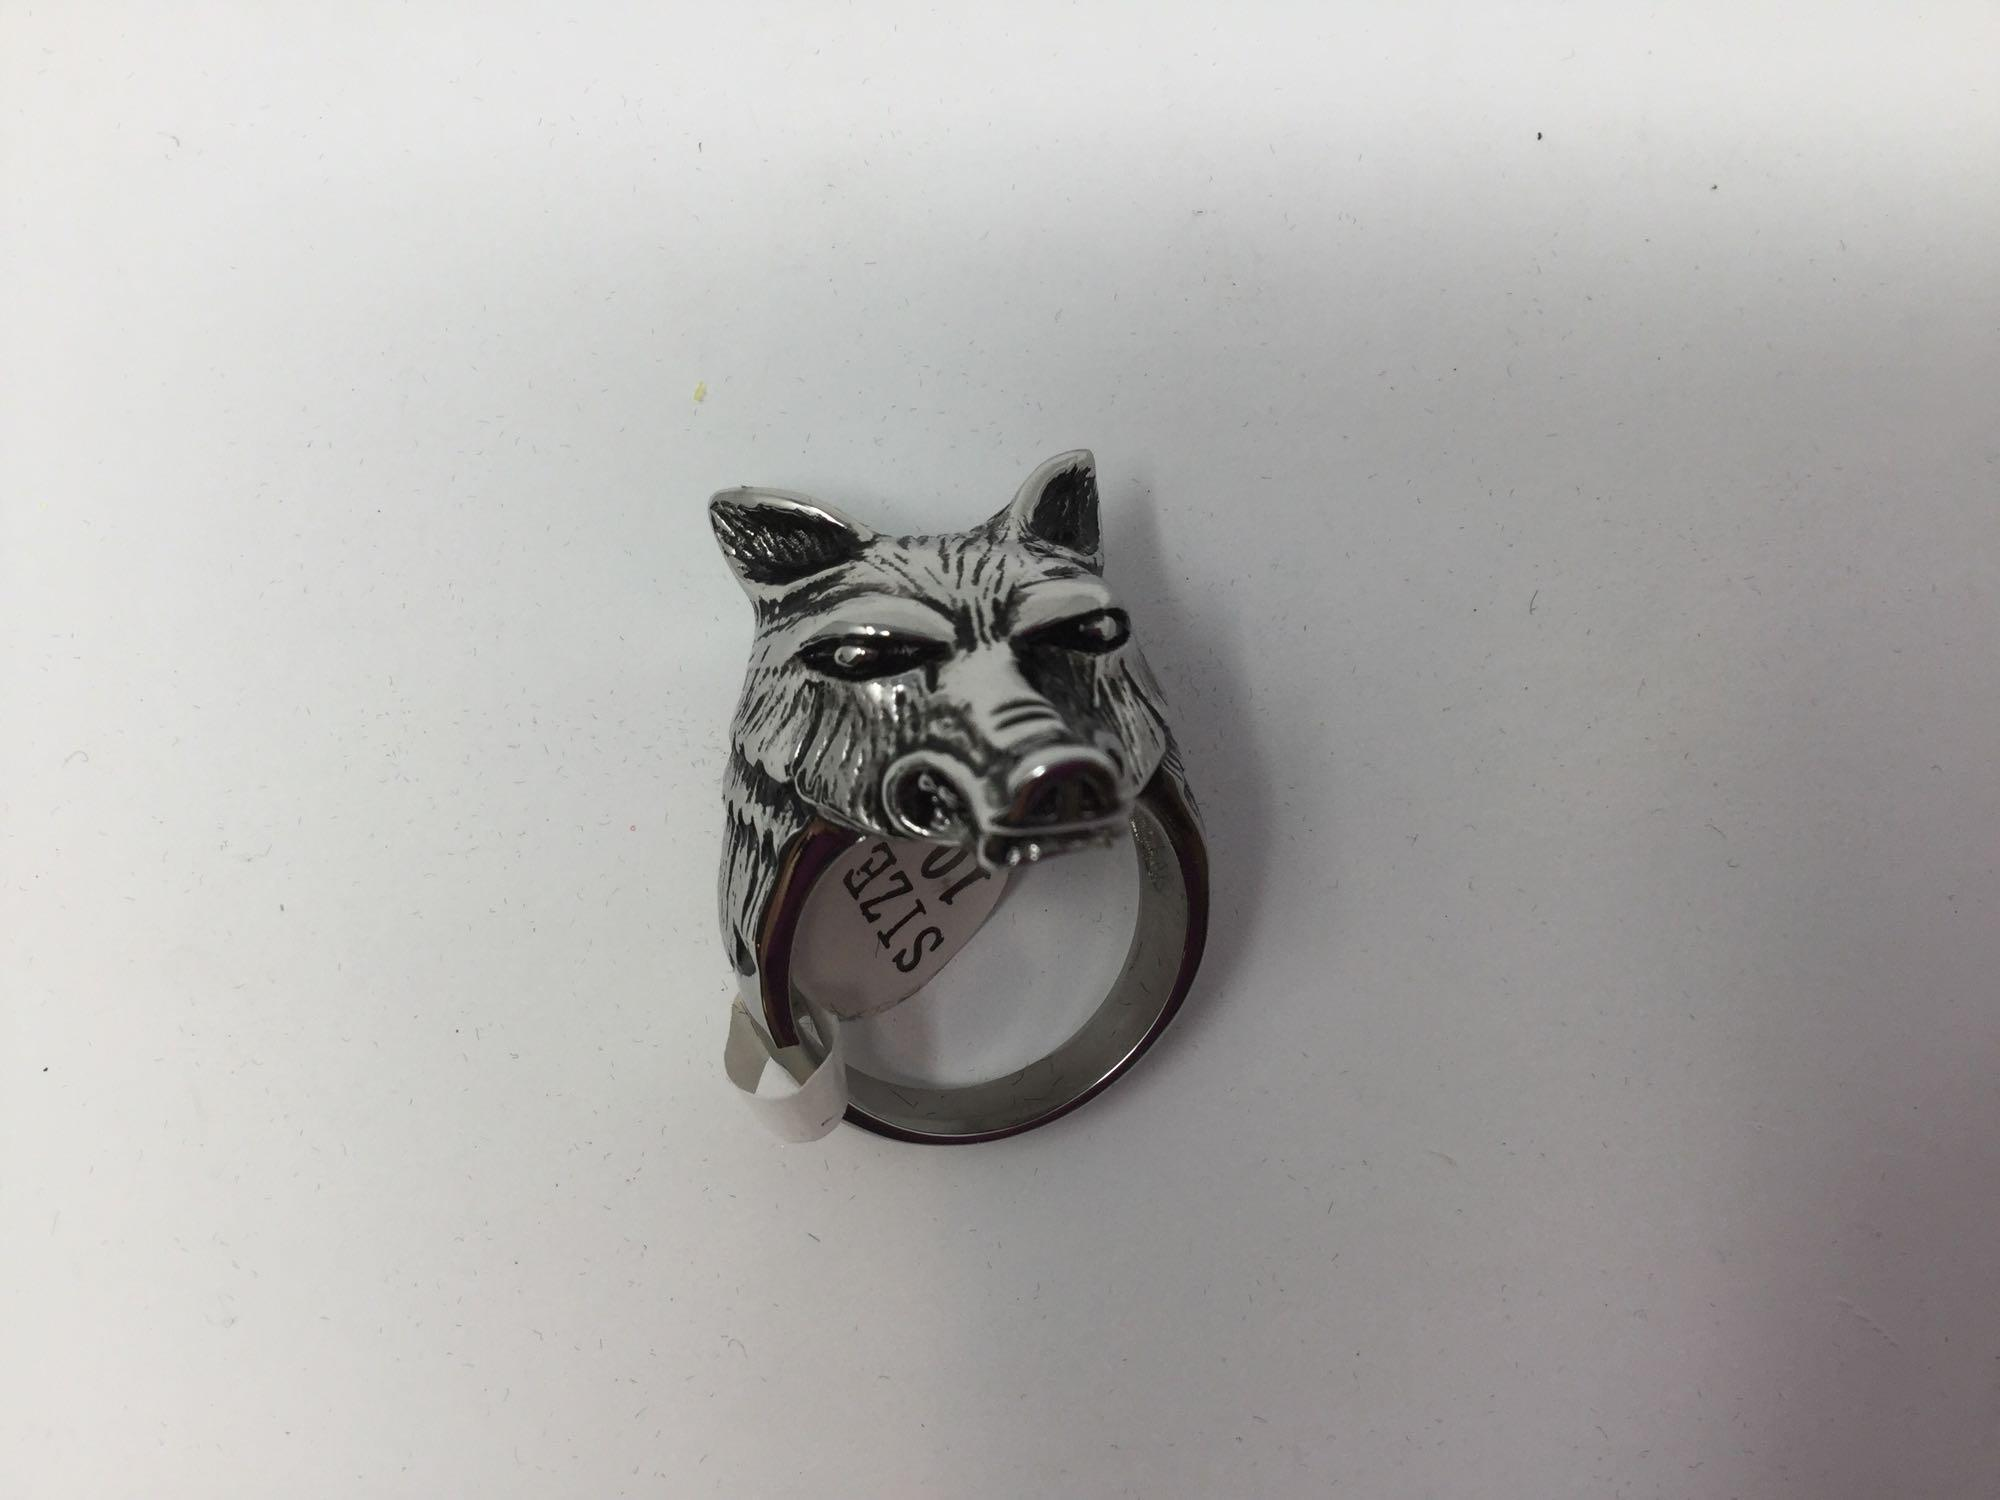 Lot 27 - Stainless Steel Men's Ring - Retail $60